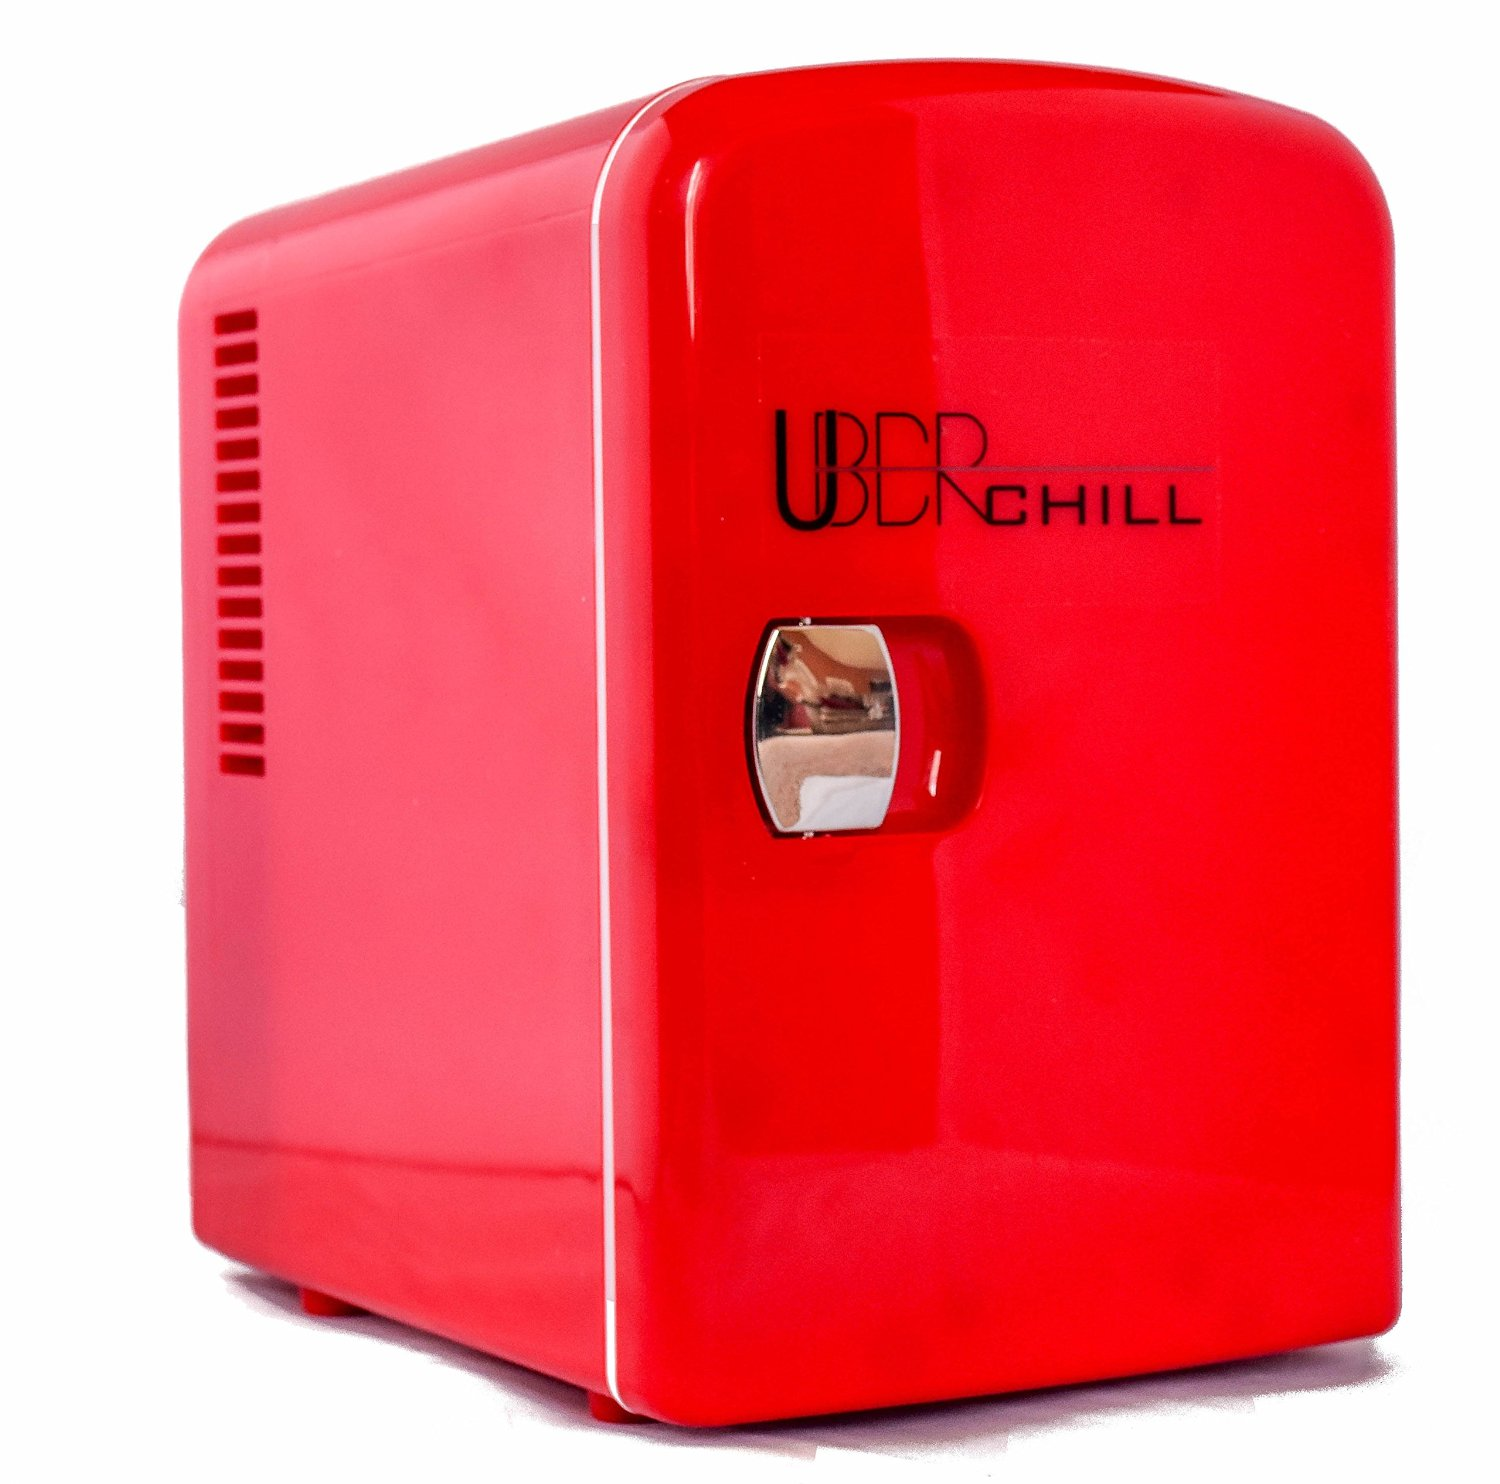 Uber Appliance UB-CH1 Uber Chill 6 can retro personal mini fridge for bedroom, office or dorm